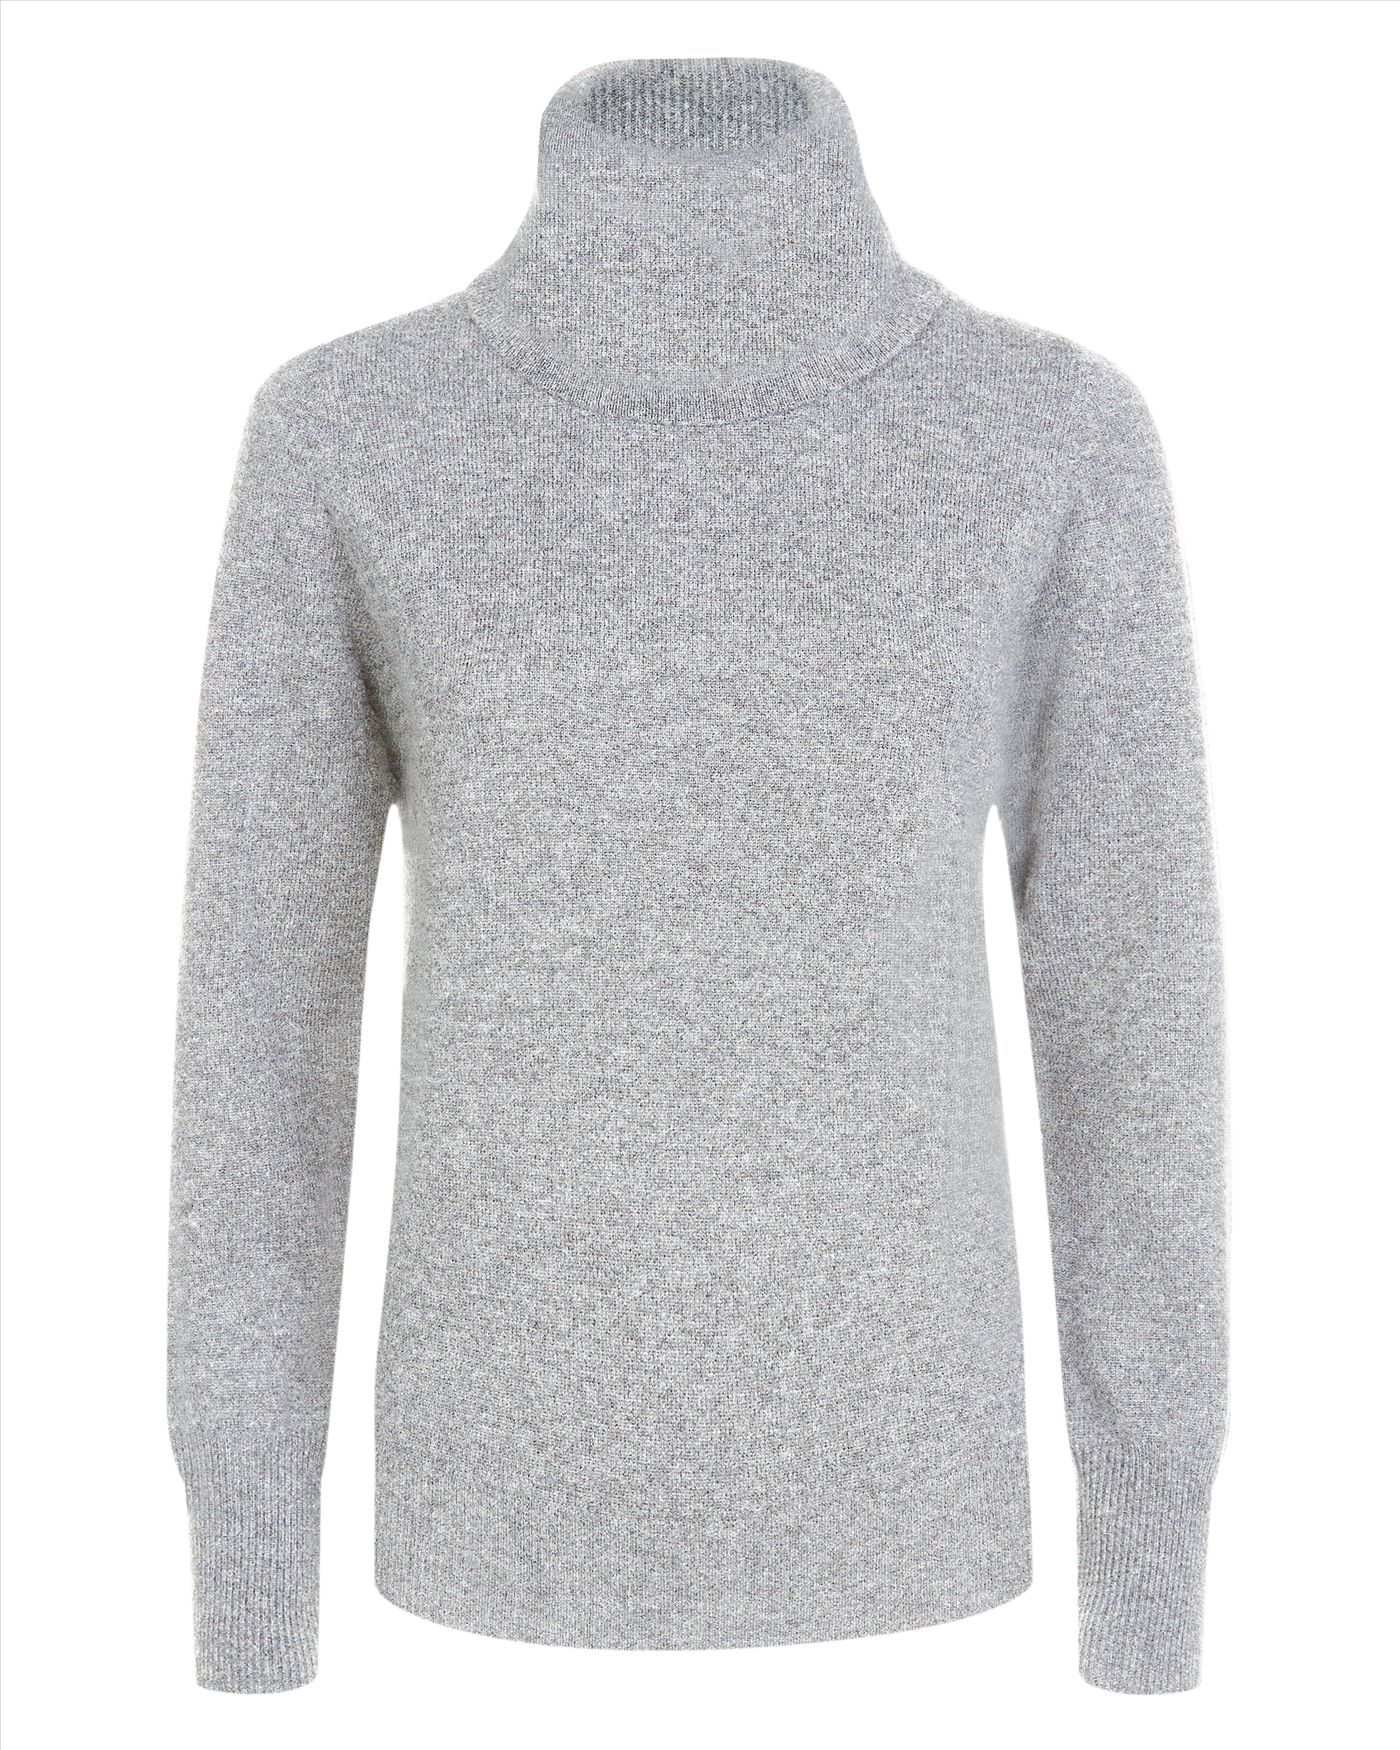 Z Supply The Marled Cowl Neck Sweater at perscrib-serp.cf - FASTEST FREE SHIPPING WORLDWIDE. Buy Z Supply Online.